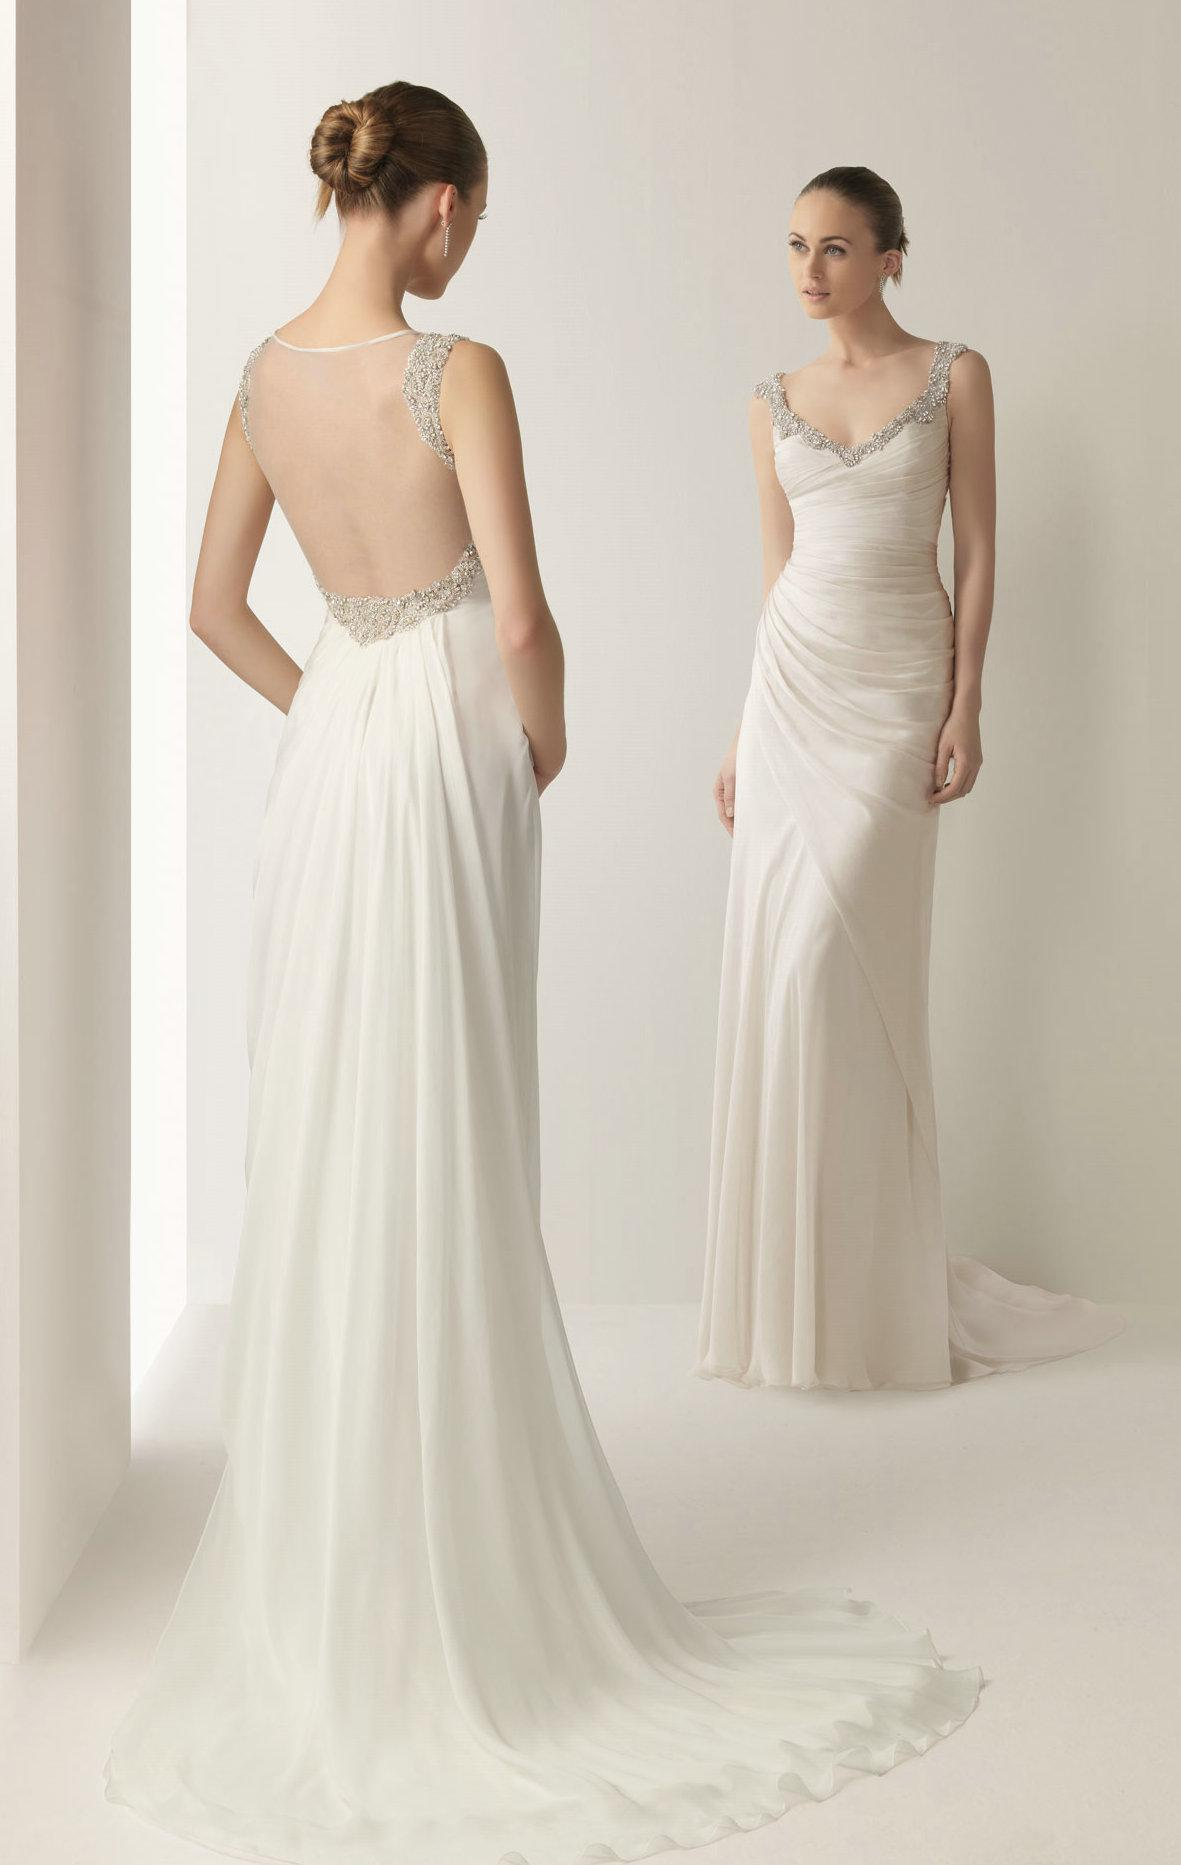 Customized v neck backless beach wedding dress 2013 online for Backless beach wedding dresses